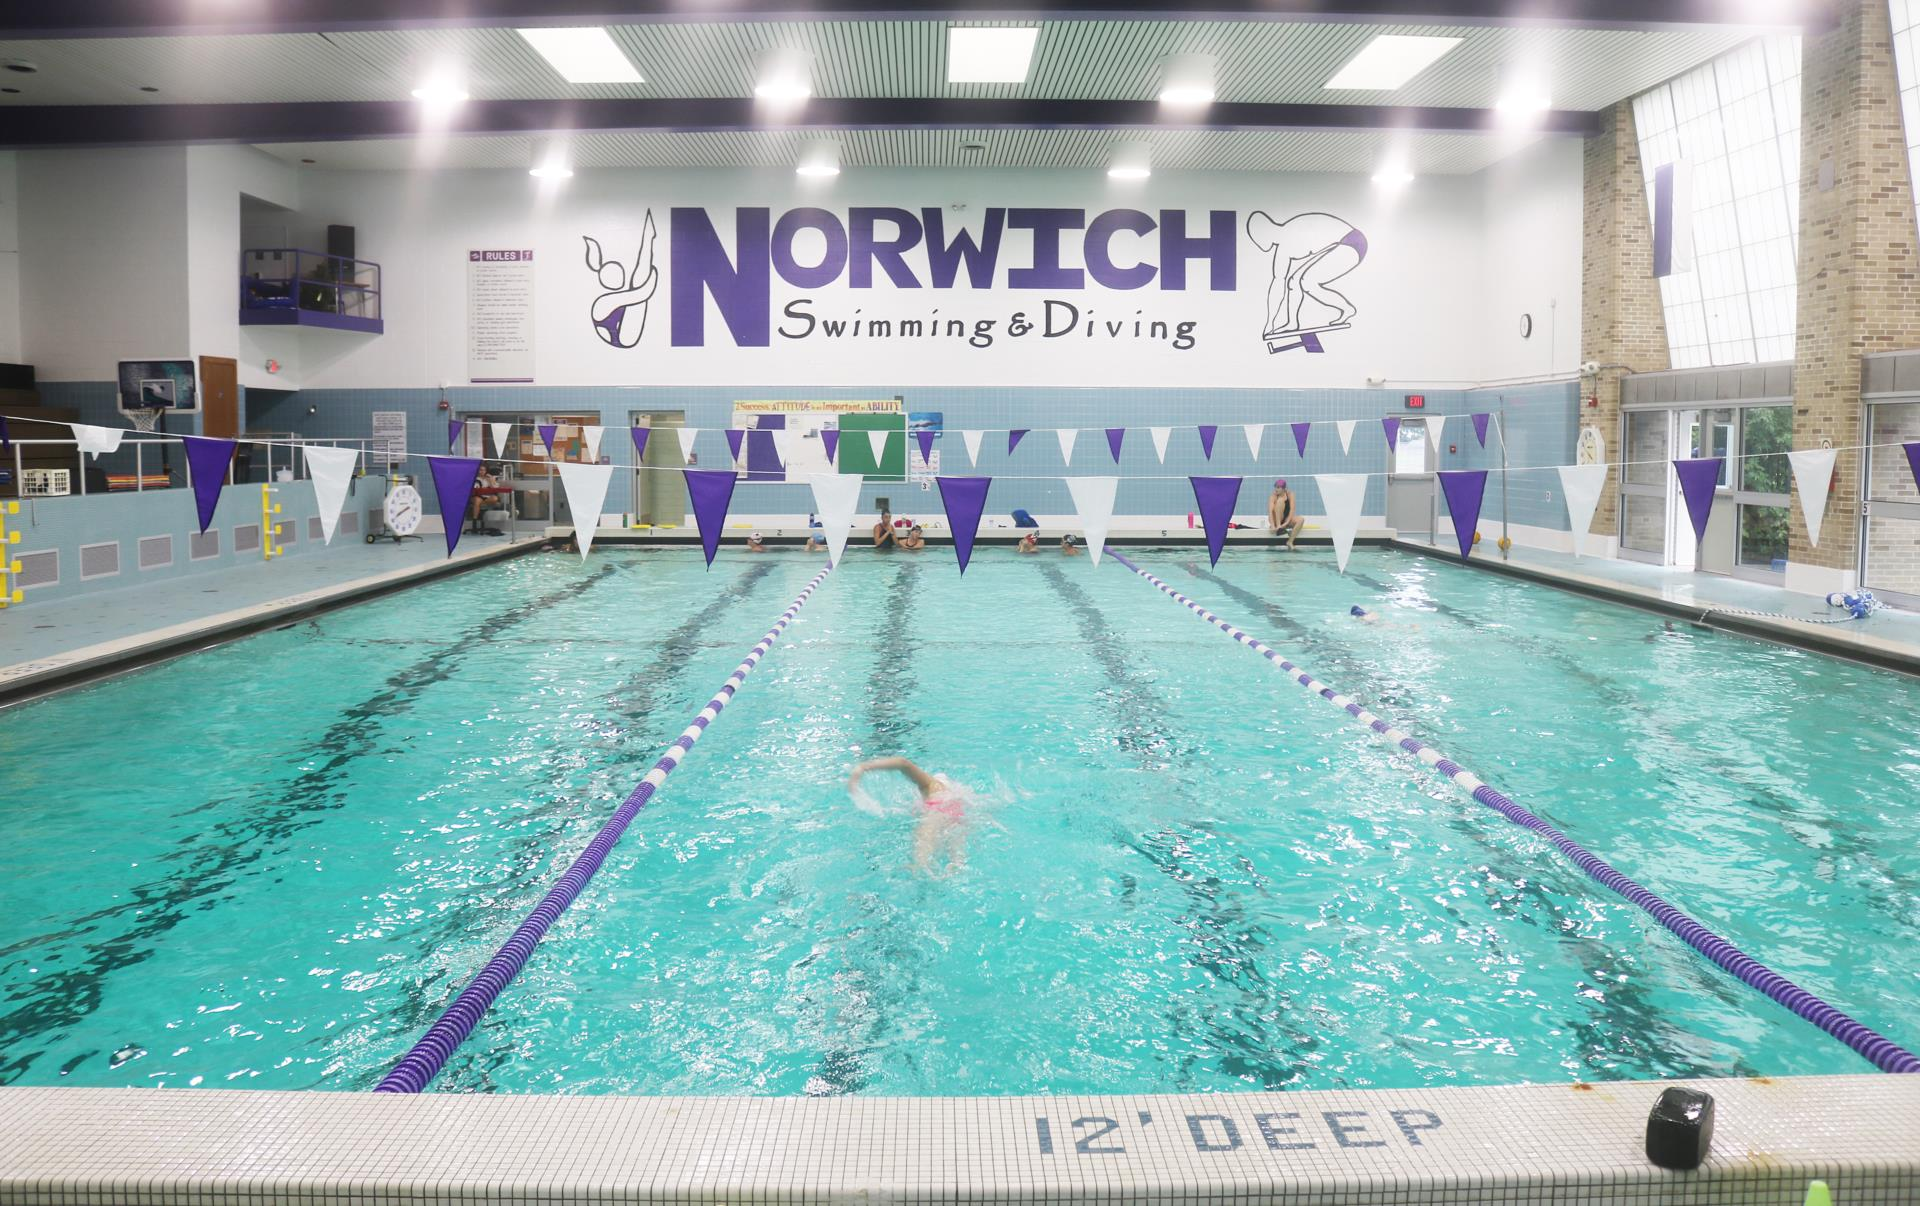 Norwich Swimming & Diving Pool